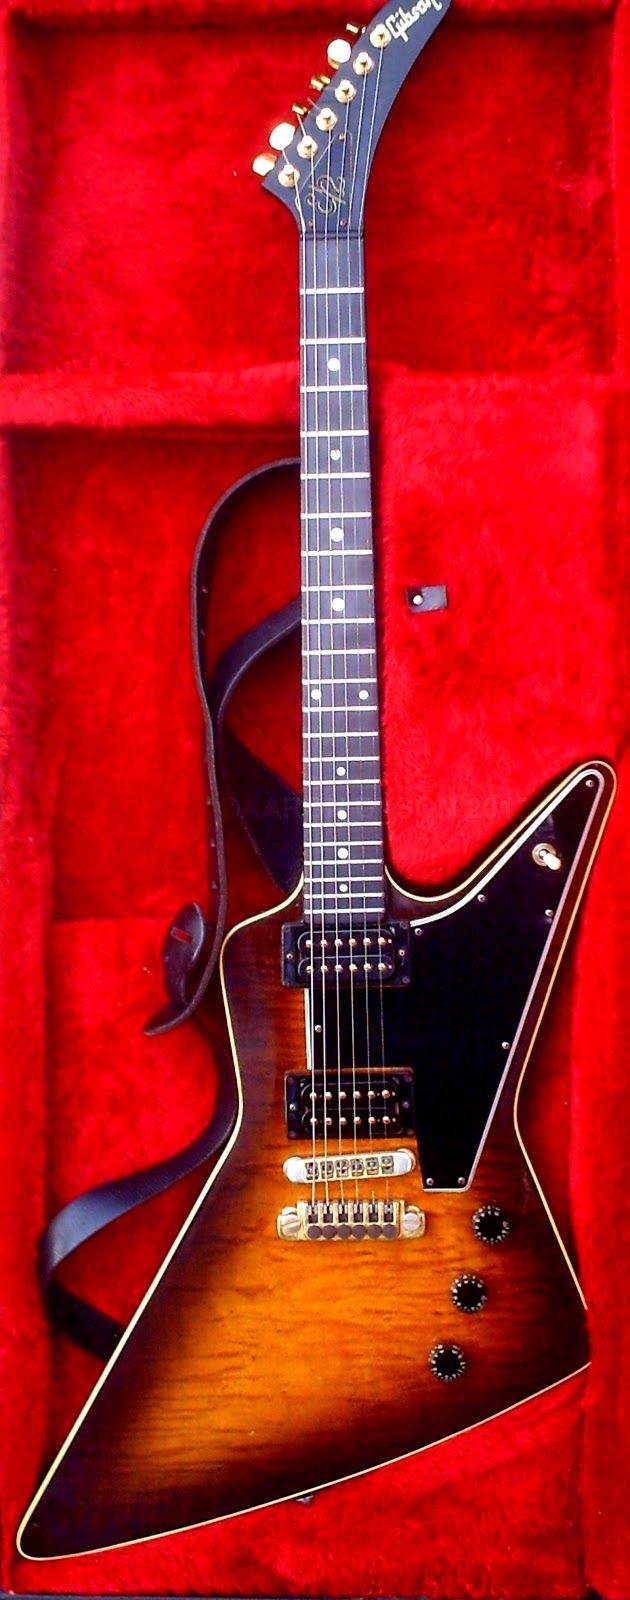 gibson explorer yahoo image search results electric guitars in 2019 gibson explorer. Black Bedroom Furniture Sets. Home Design Ideas